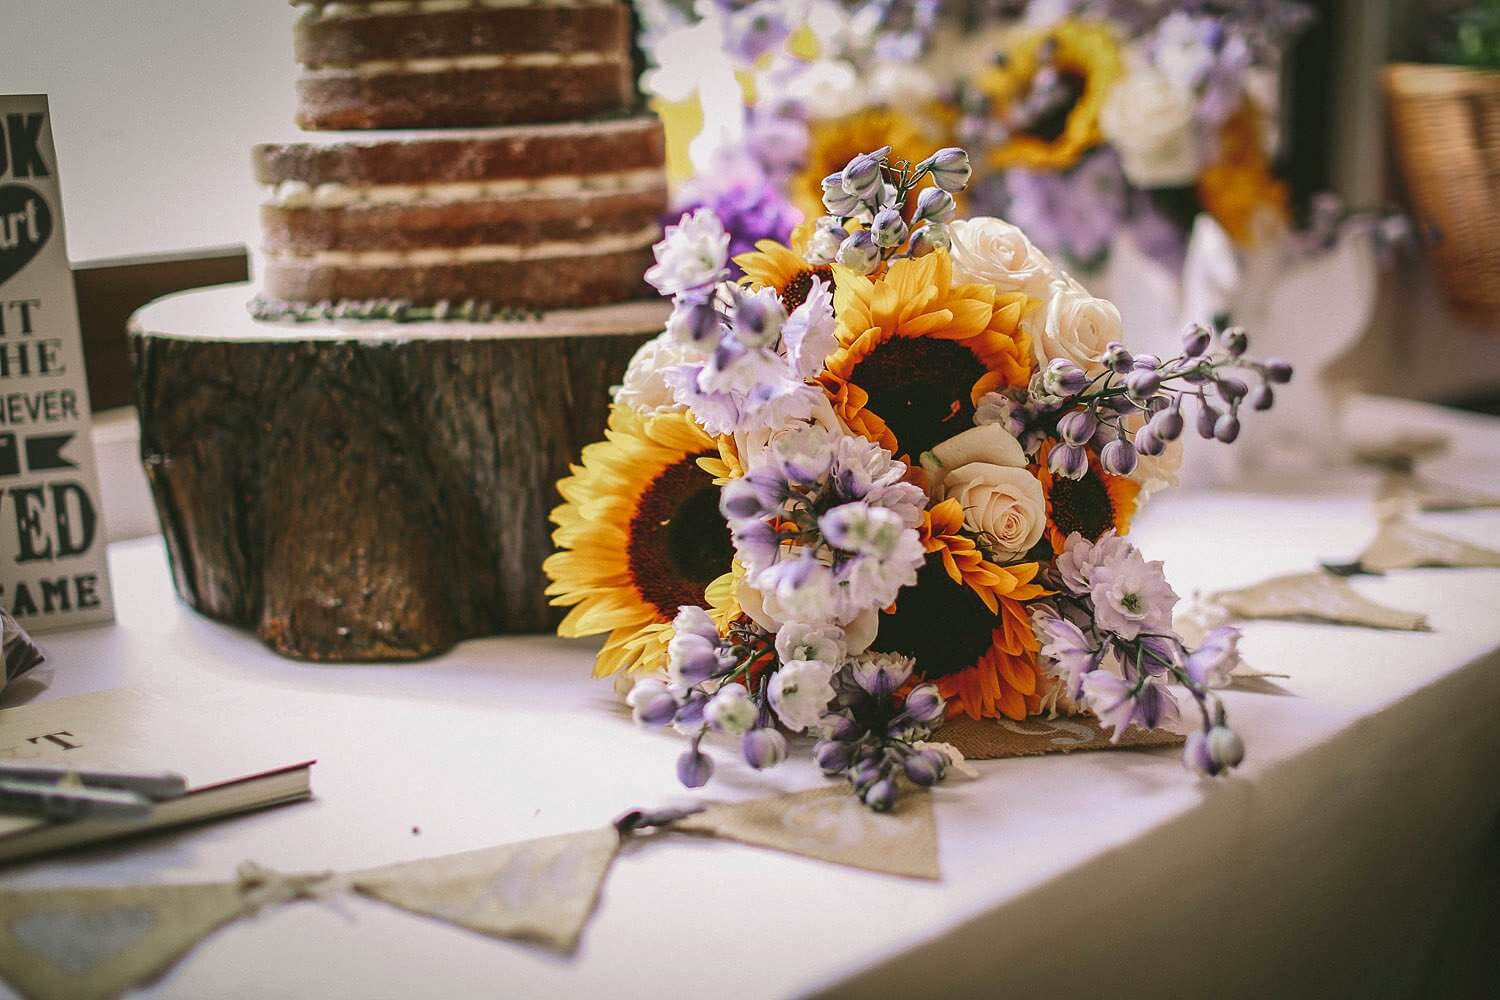 Sunflowers Royal Liver Building wedding photography